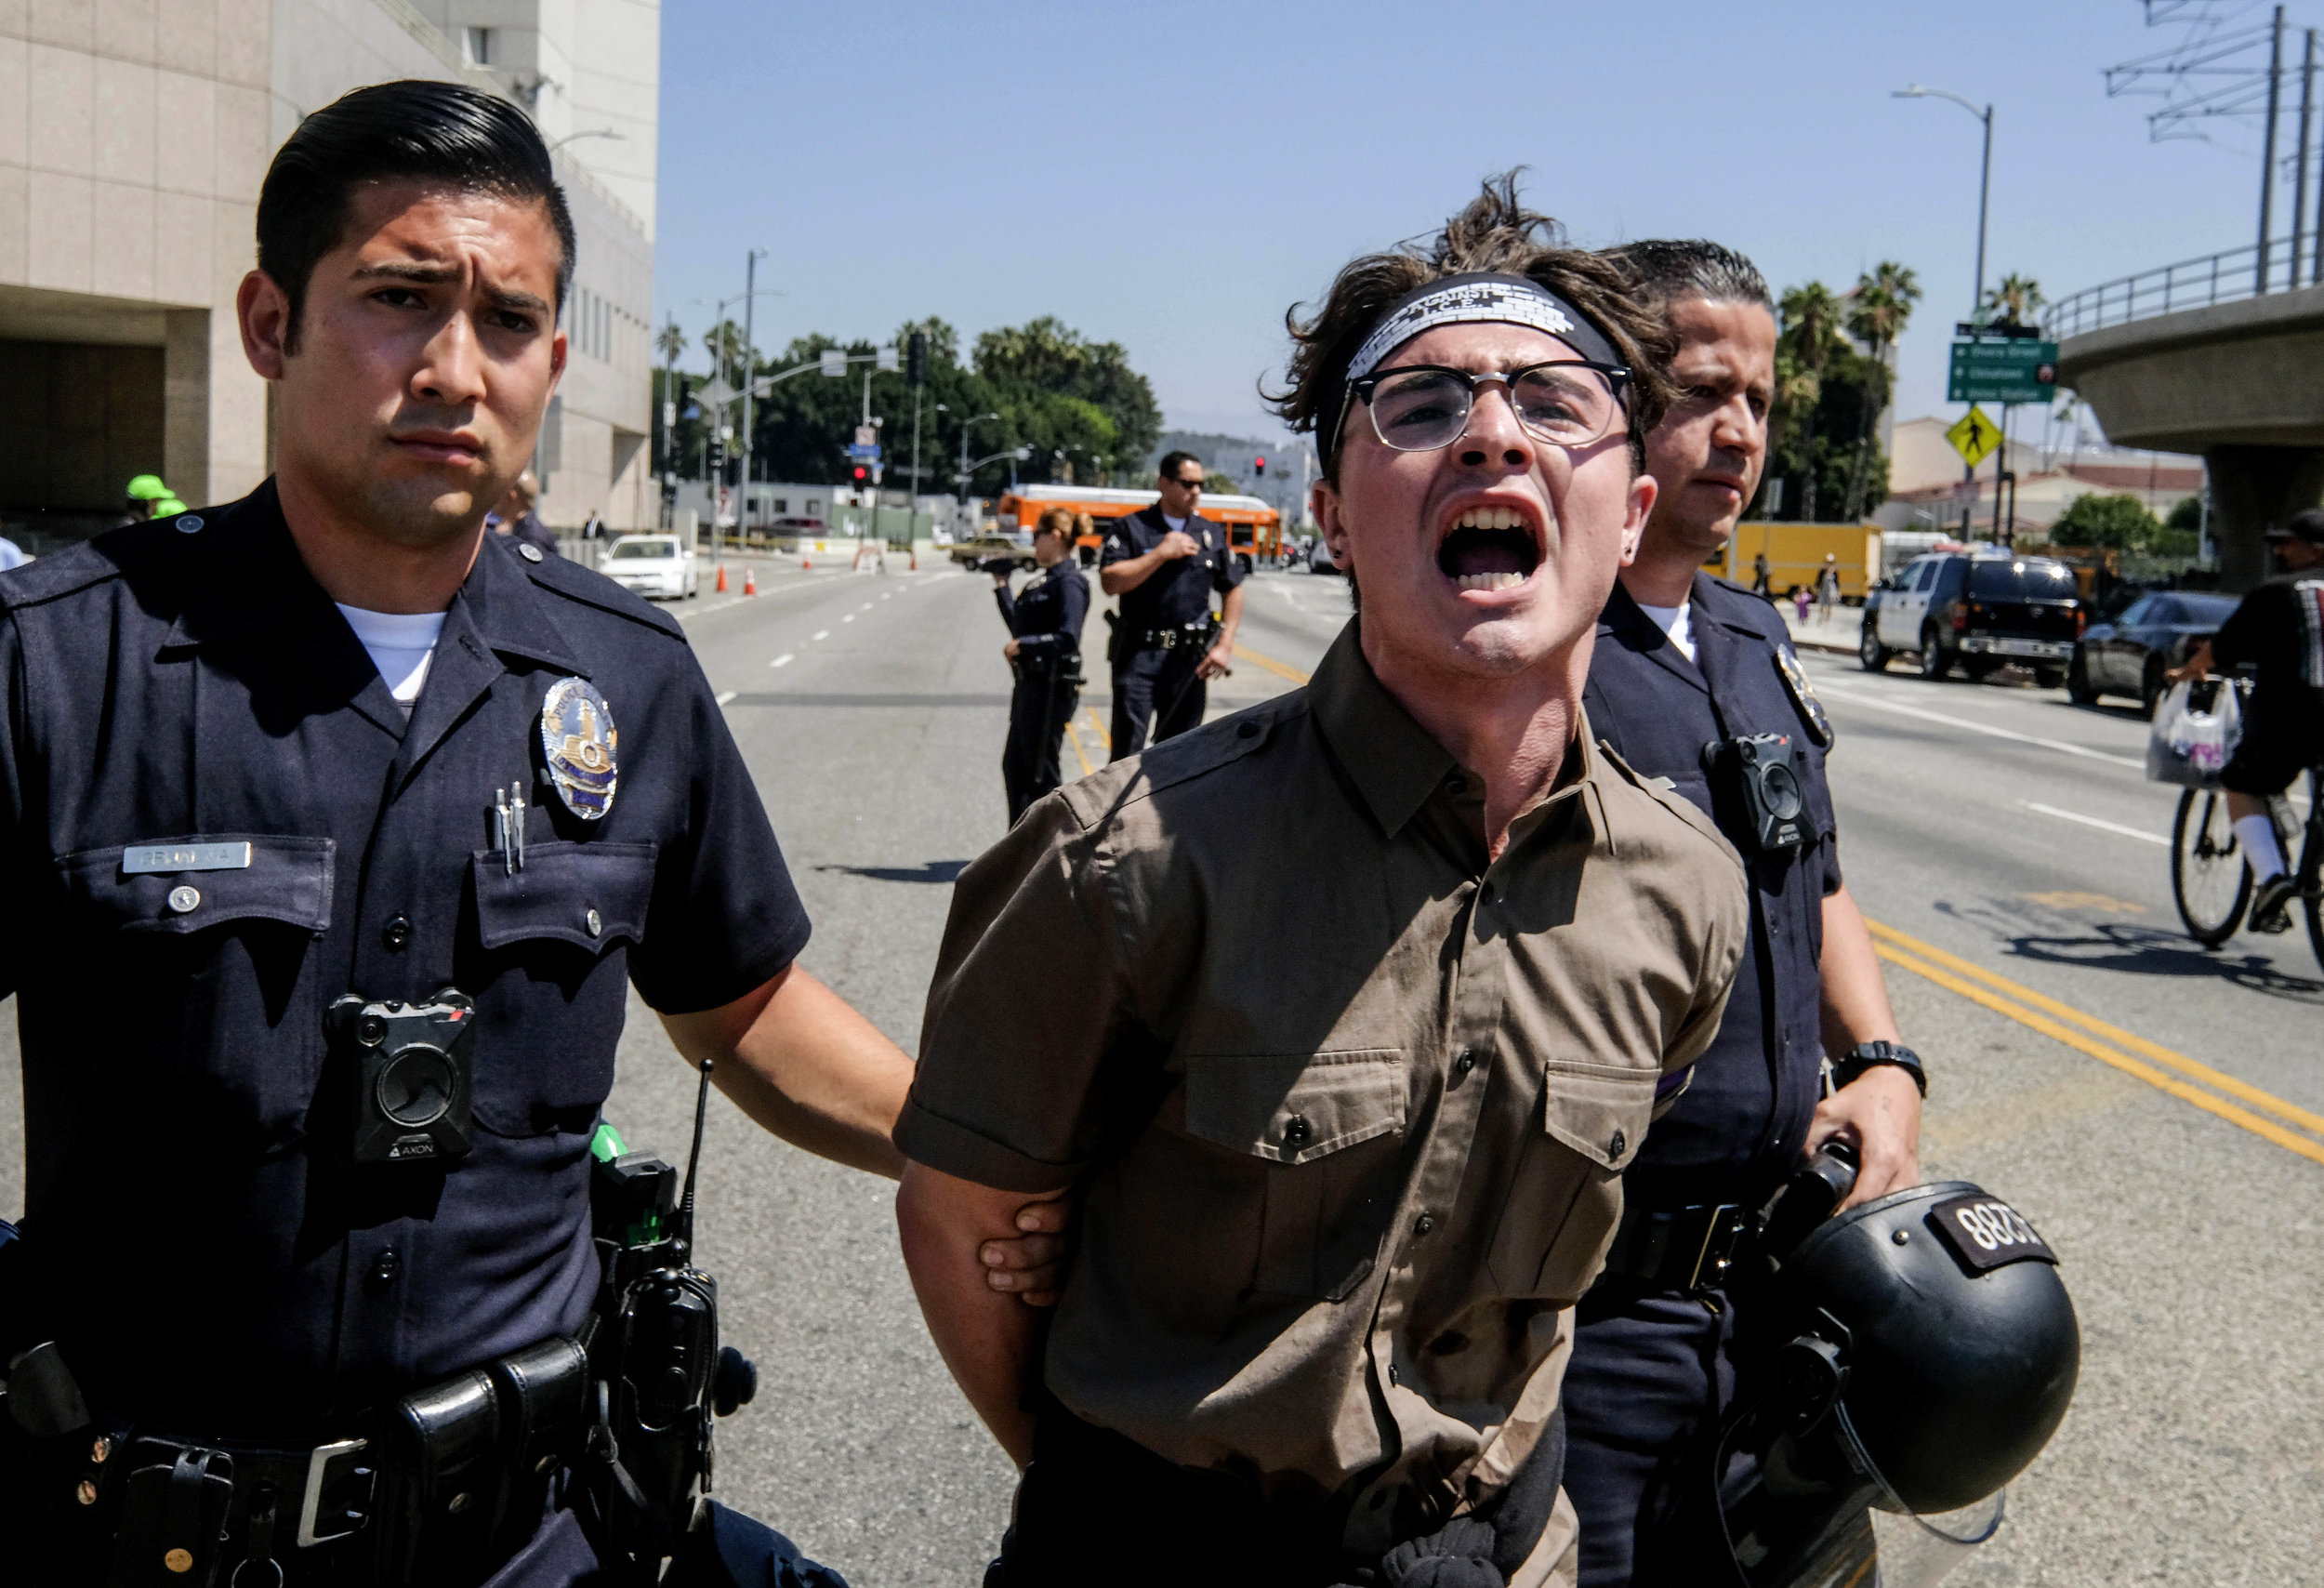 A protester is taken away in cuffs after being arrested in front of the Immigration and Customs Enforcement facility in downtown Los Angeles on Monday, July 2, 2018. A group of protesters sat down in the street and blocking the entrance to the Immigration and Customs Enforcement headquarters as part of a nationwide call to end Immigration and Customs Enforcement's separation of families.